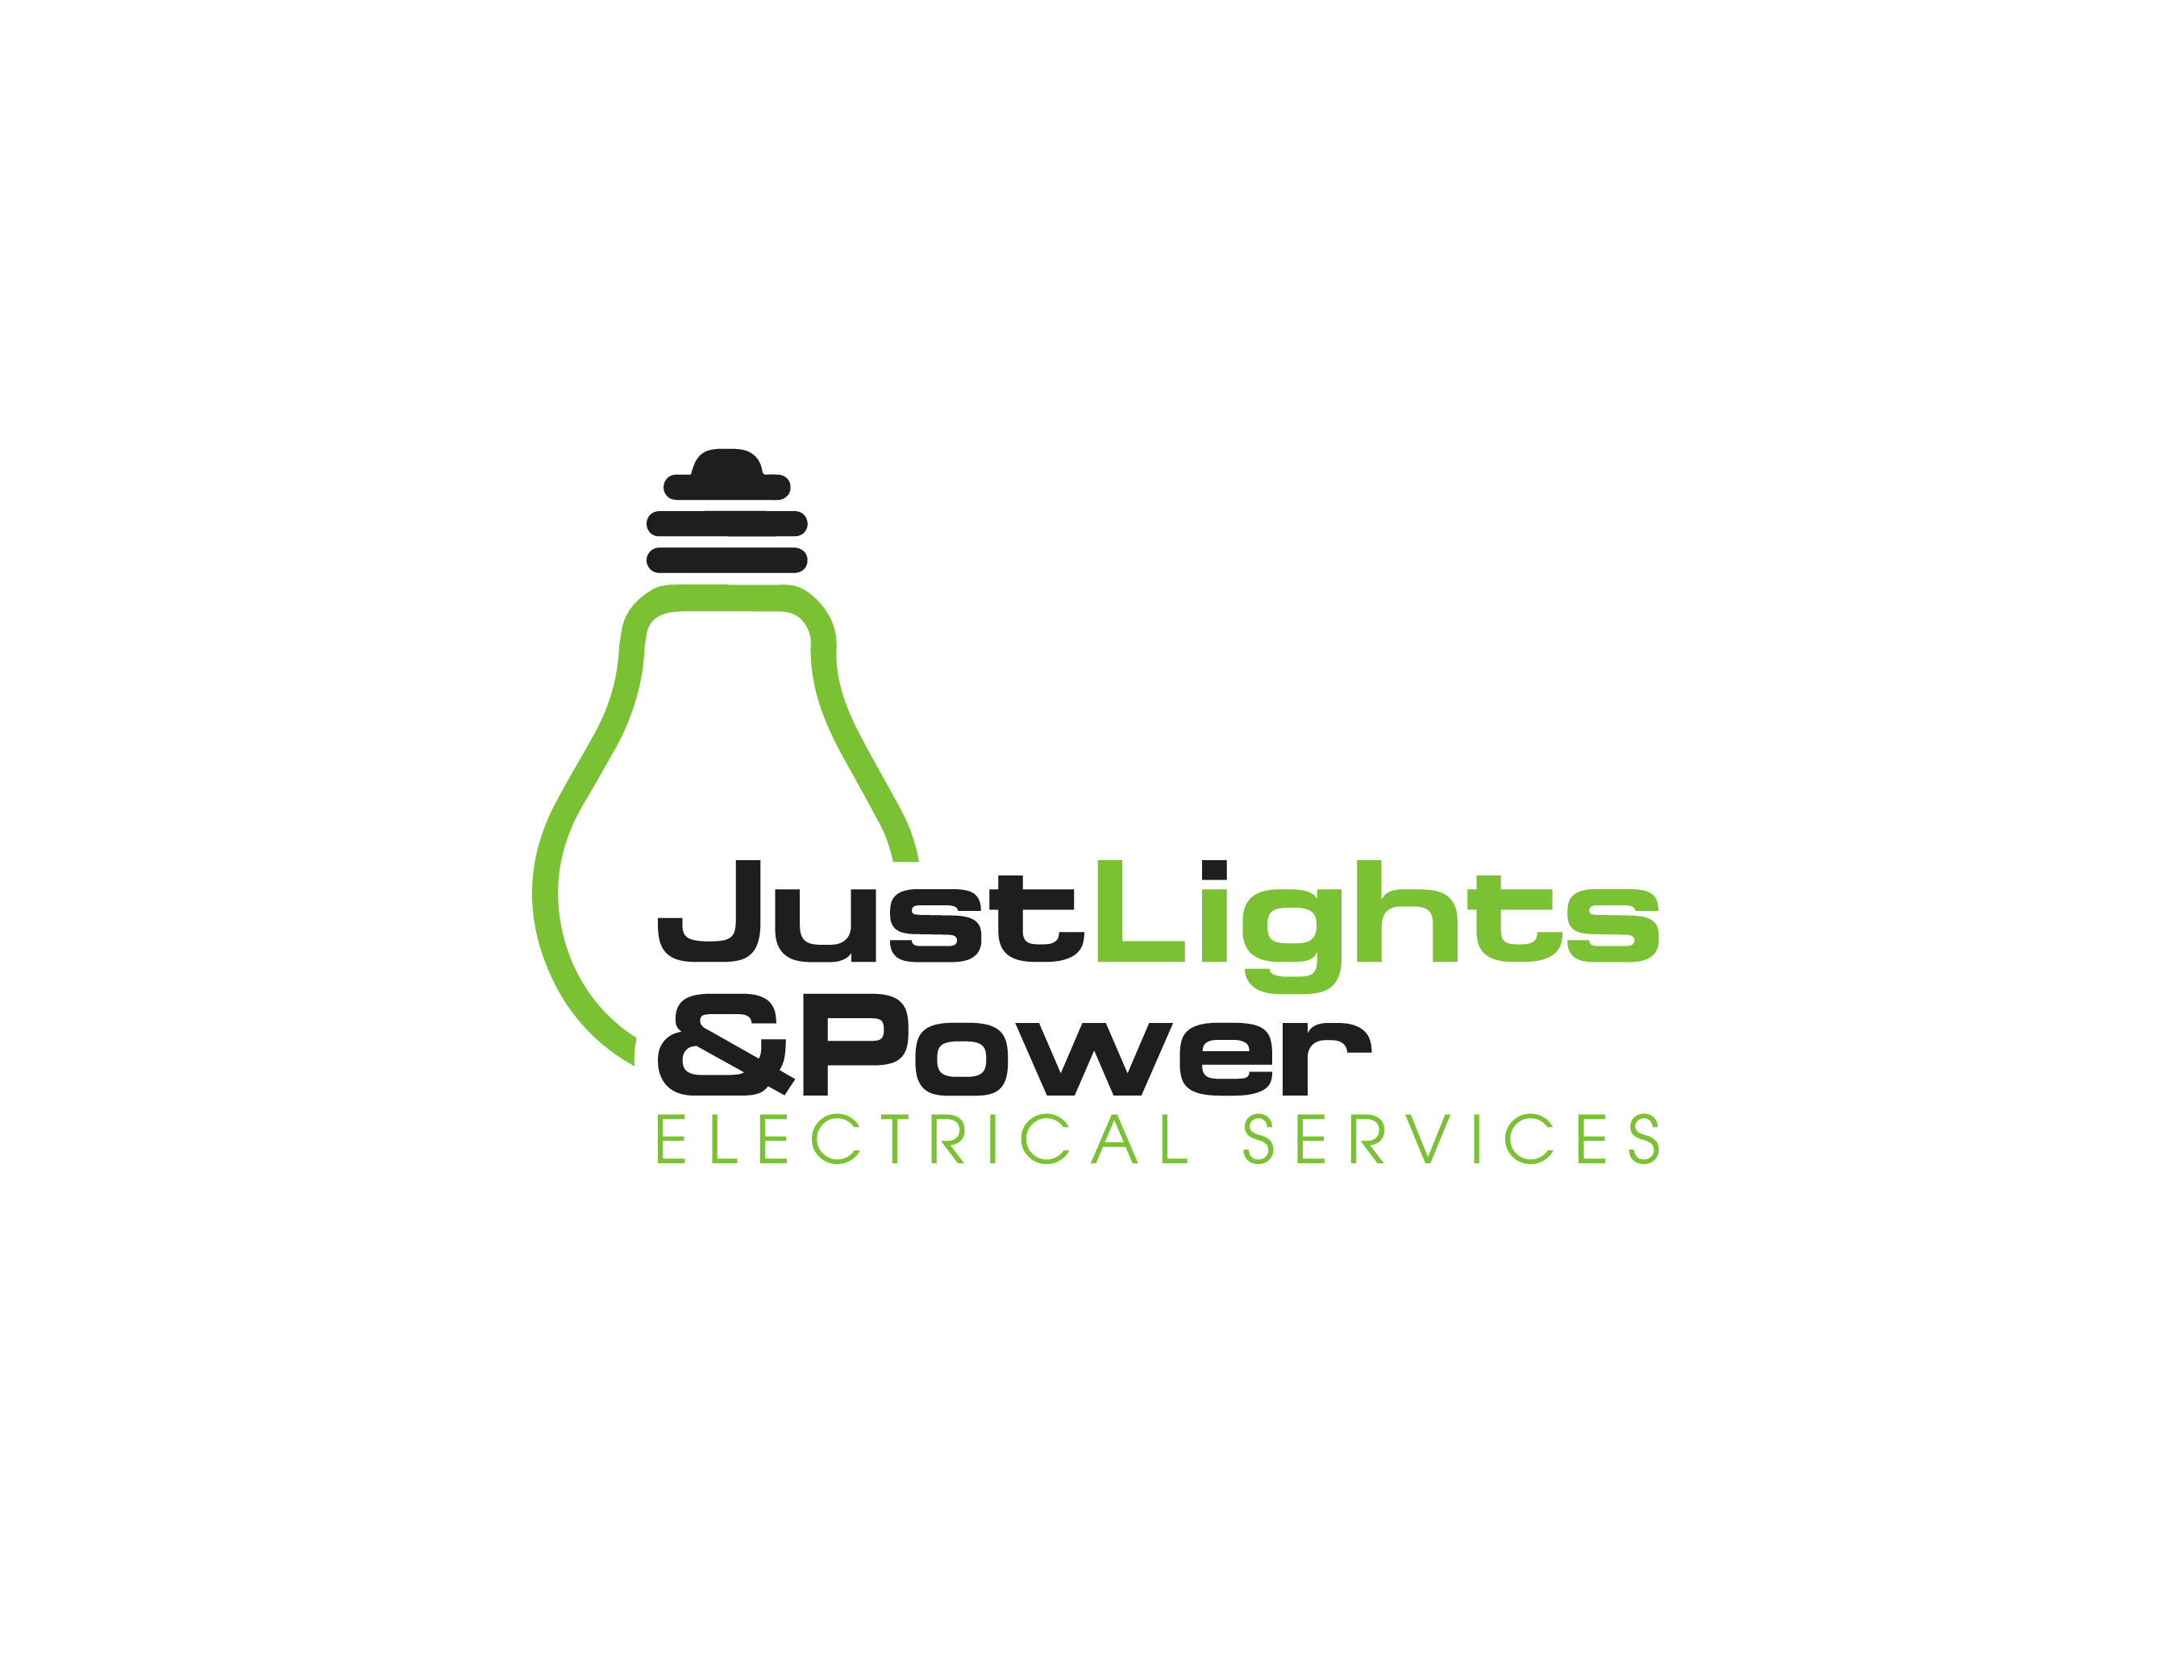 Just Lights & Power Electrical Services Logo